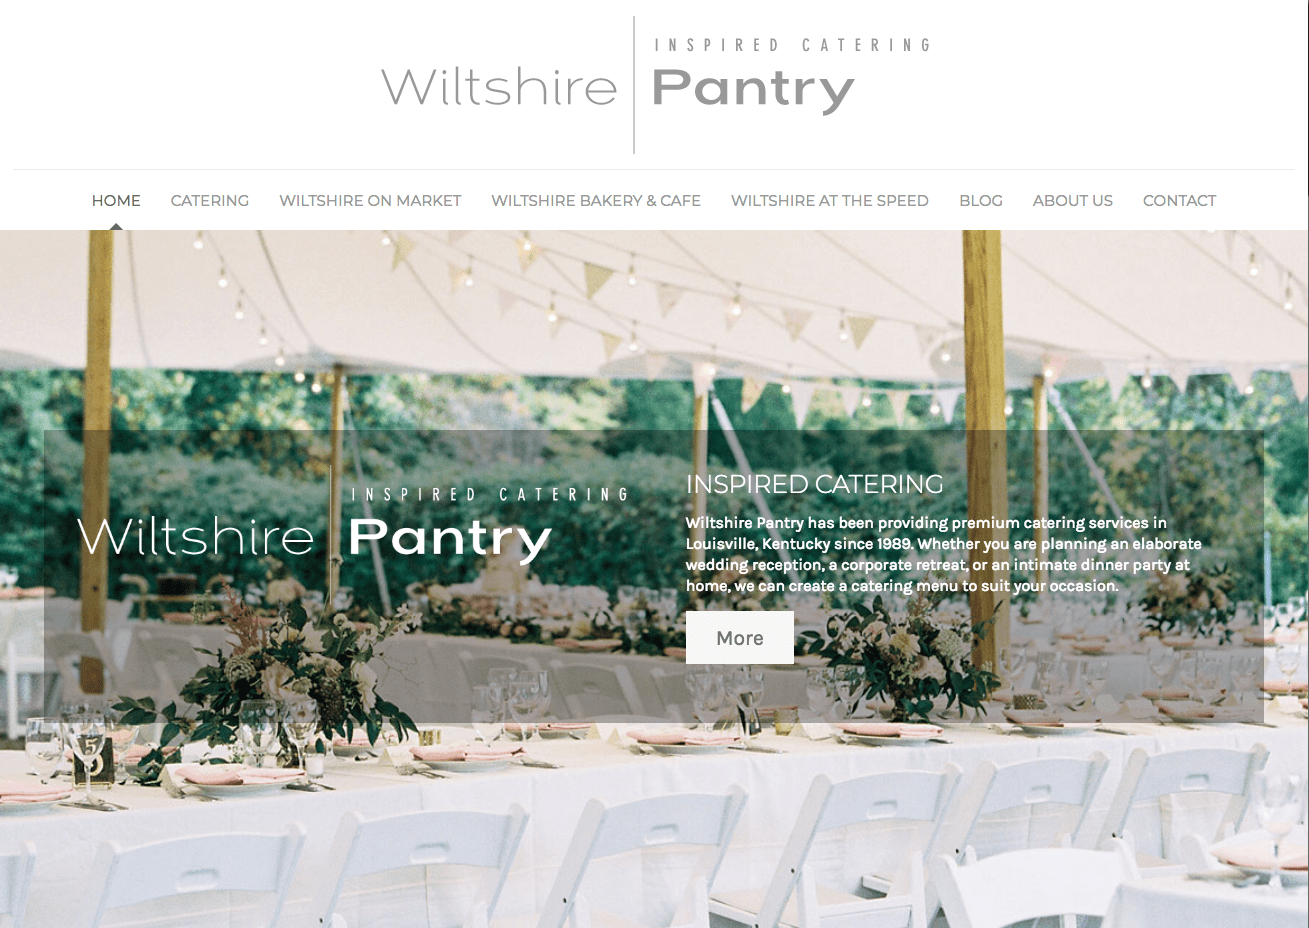 Wiltshire Pantry web site